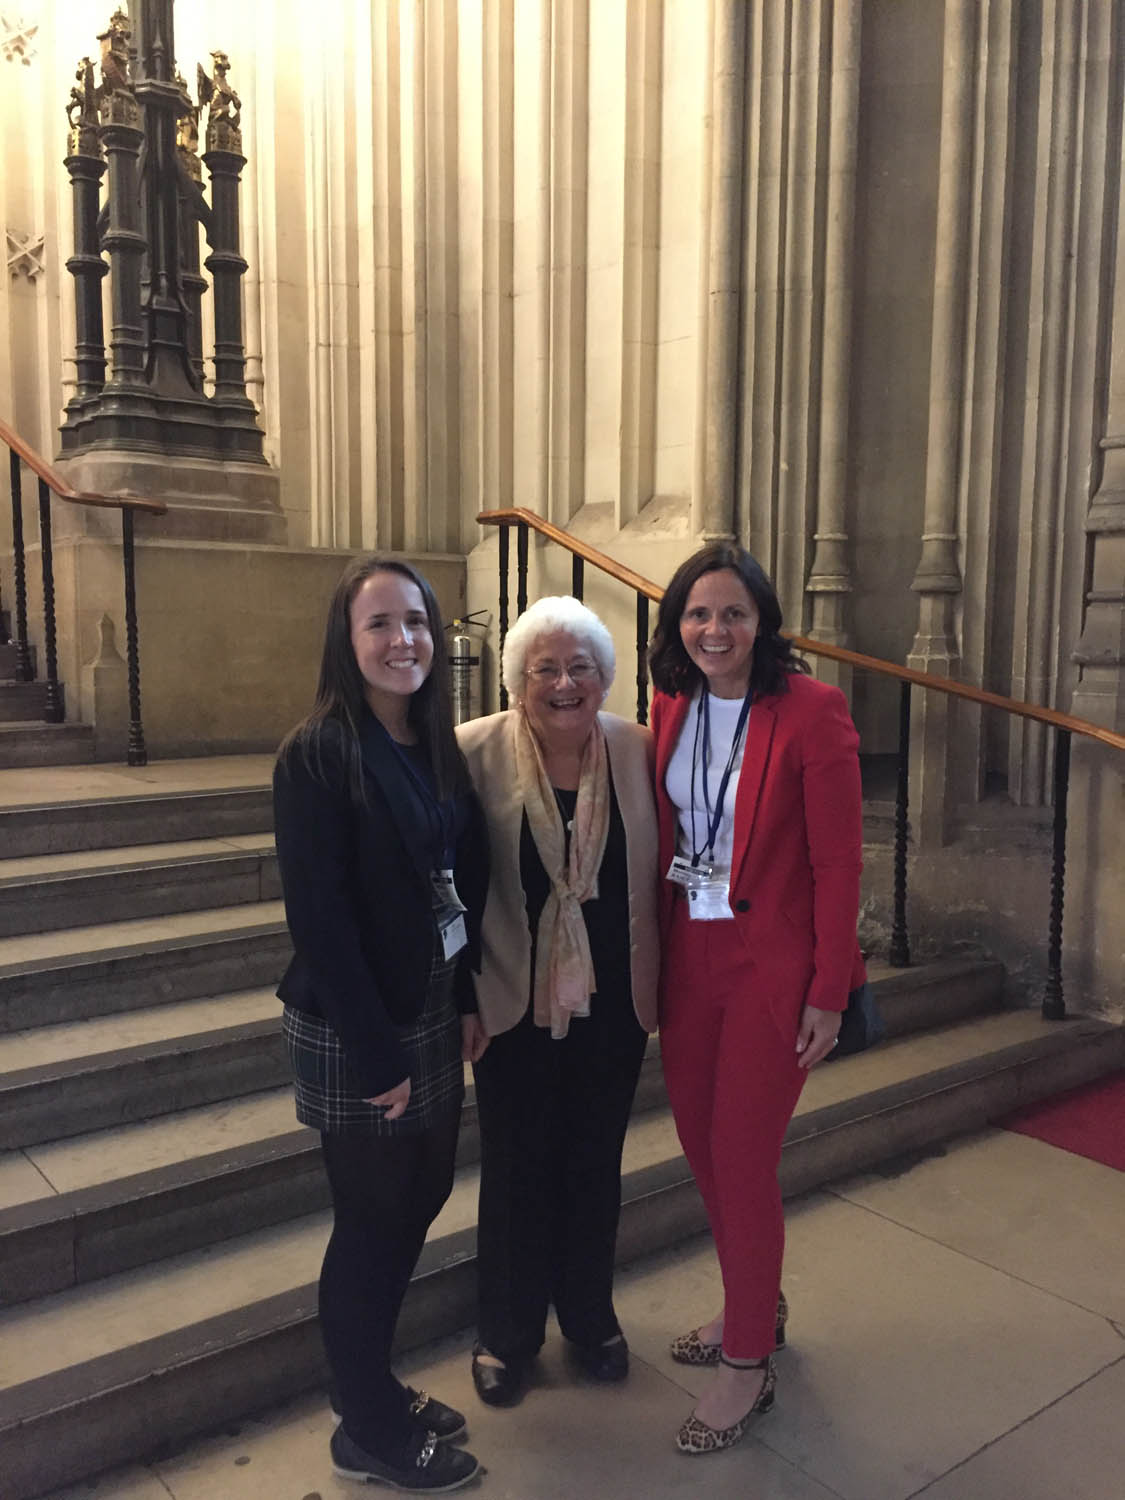 A private tour of the House of Lords by Angela Harris, Baroness Harris of Richmond